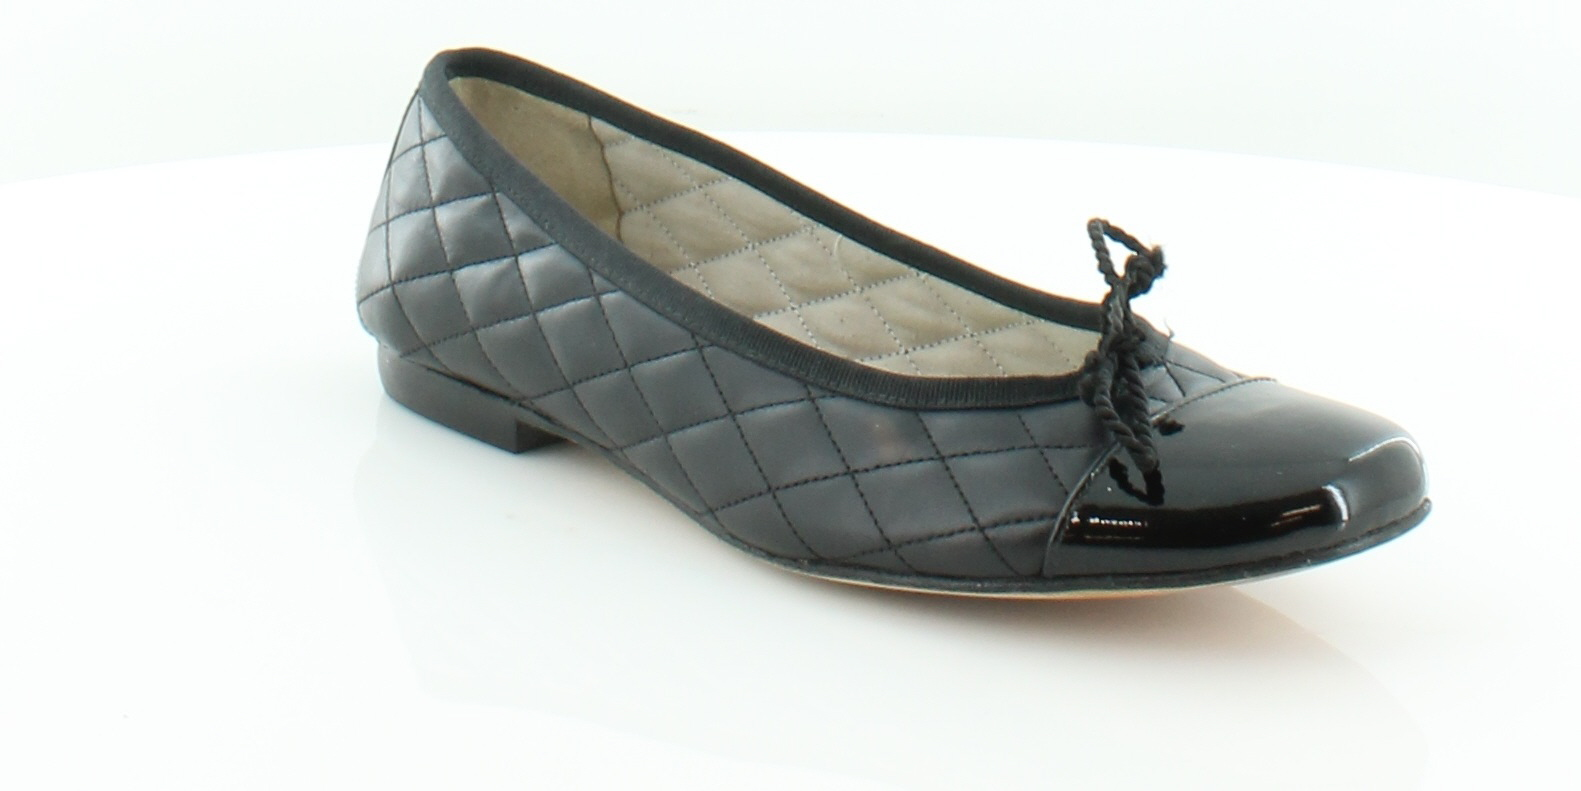 French Sole Zapatos Passport Negro Zapatos Sole para mujer Talla 5 M pisos MSRP  205 5b0c65